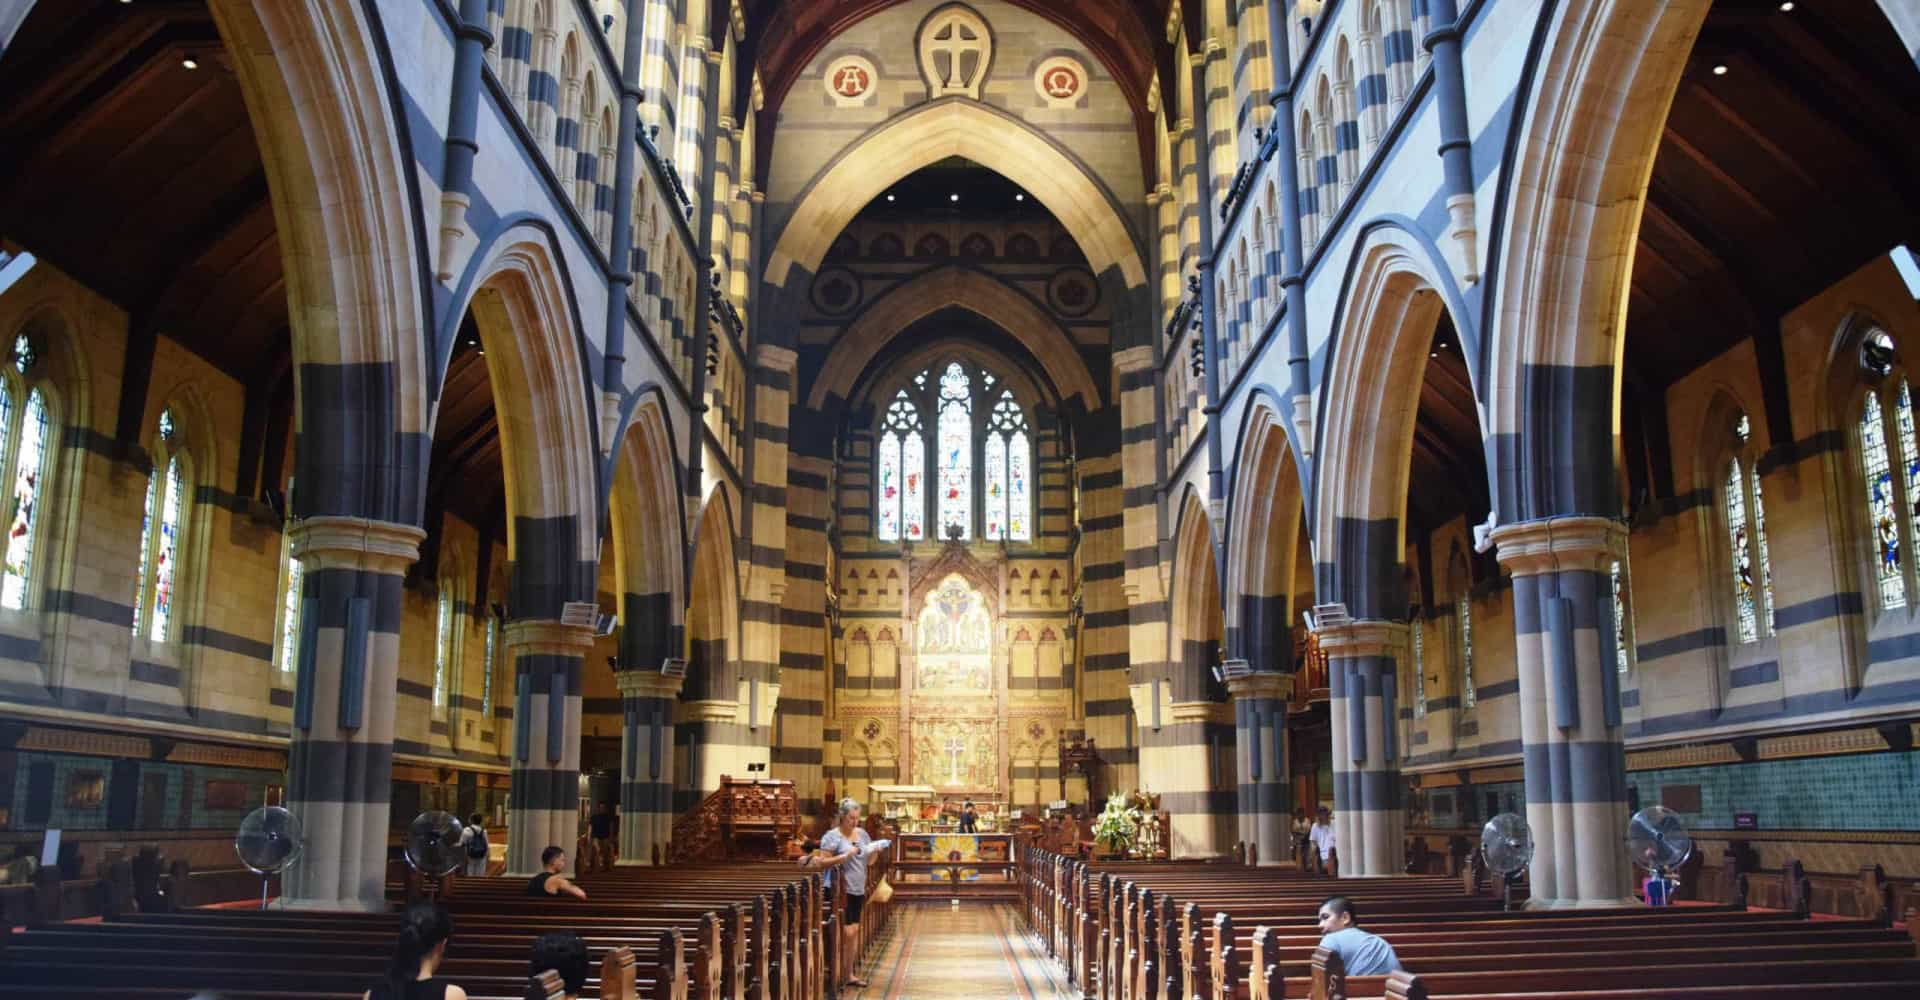 Australia's incredibly beautiful cathedrals